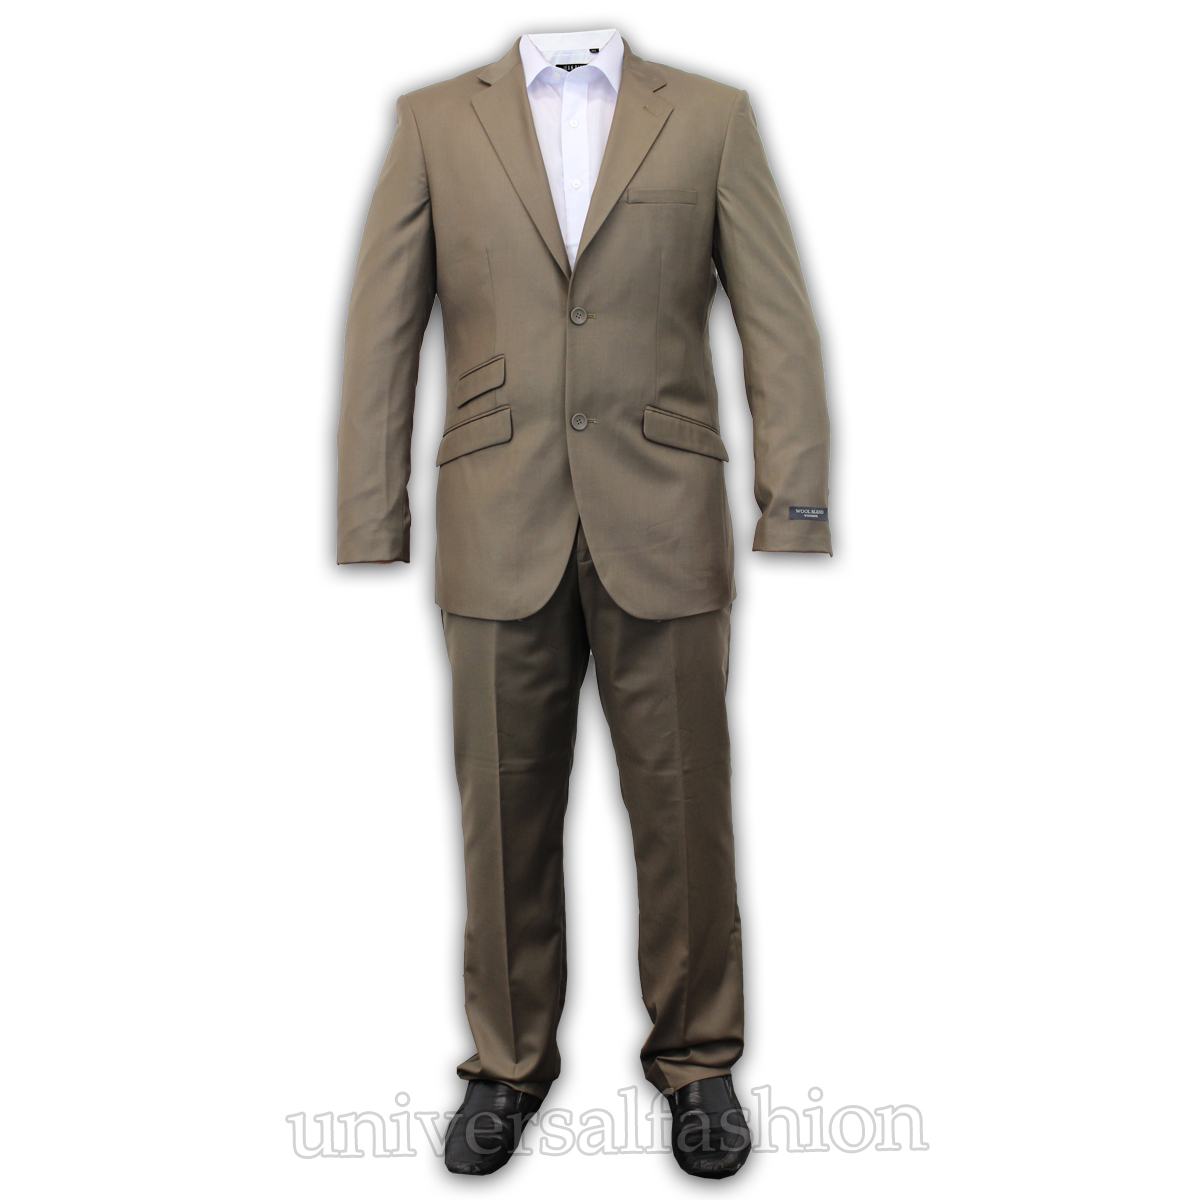 Search a wide selection of mens suits and sport coats on forex-2016.ga Free shipping and free returns on eligible items. From The Community. Men's Two-Piece Classic Fit Office 2 Button Suit Jacket & Pleated Pants Set $ 89 99 Prime. out of 5 stars STACY ADAMS. Men's Suny Vested 3 Piece Suit. from $ 98 89 Prime. out of 5 stars